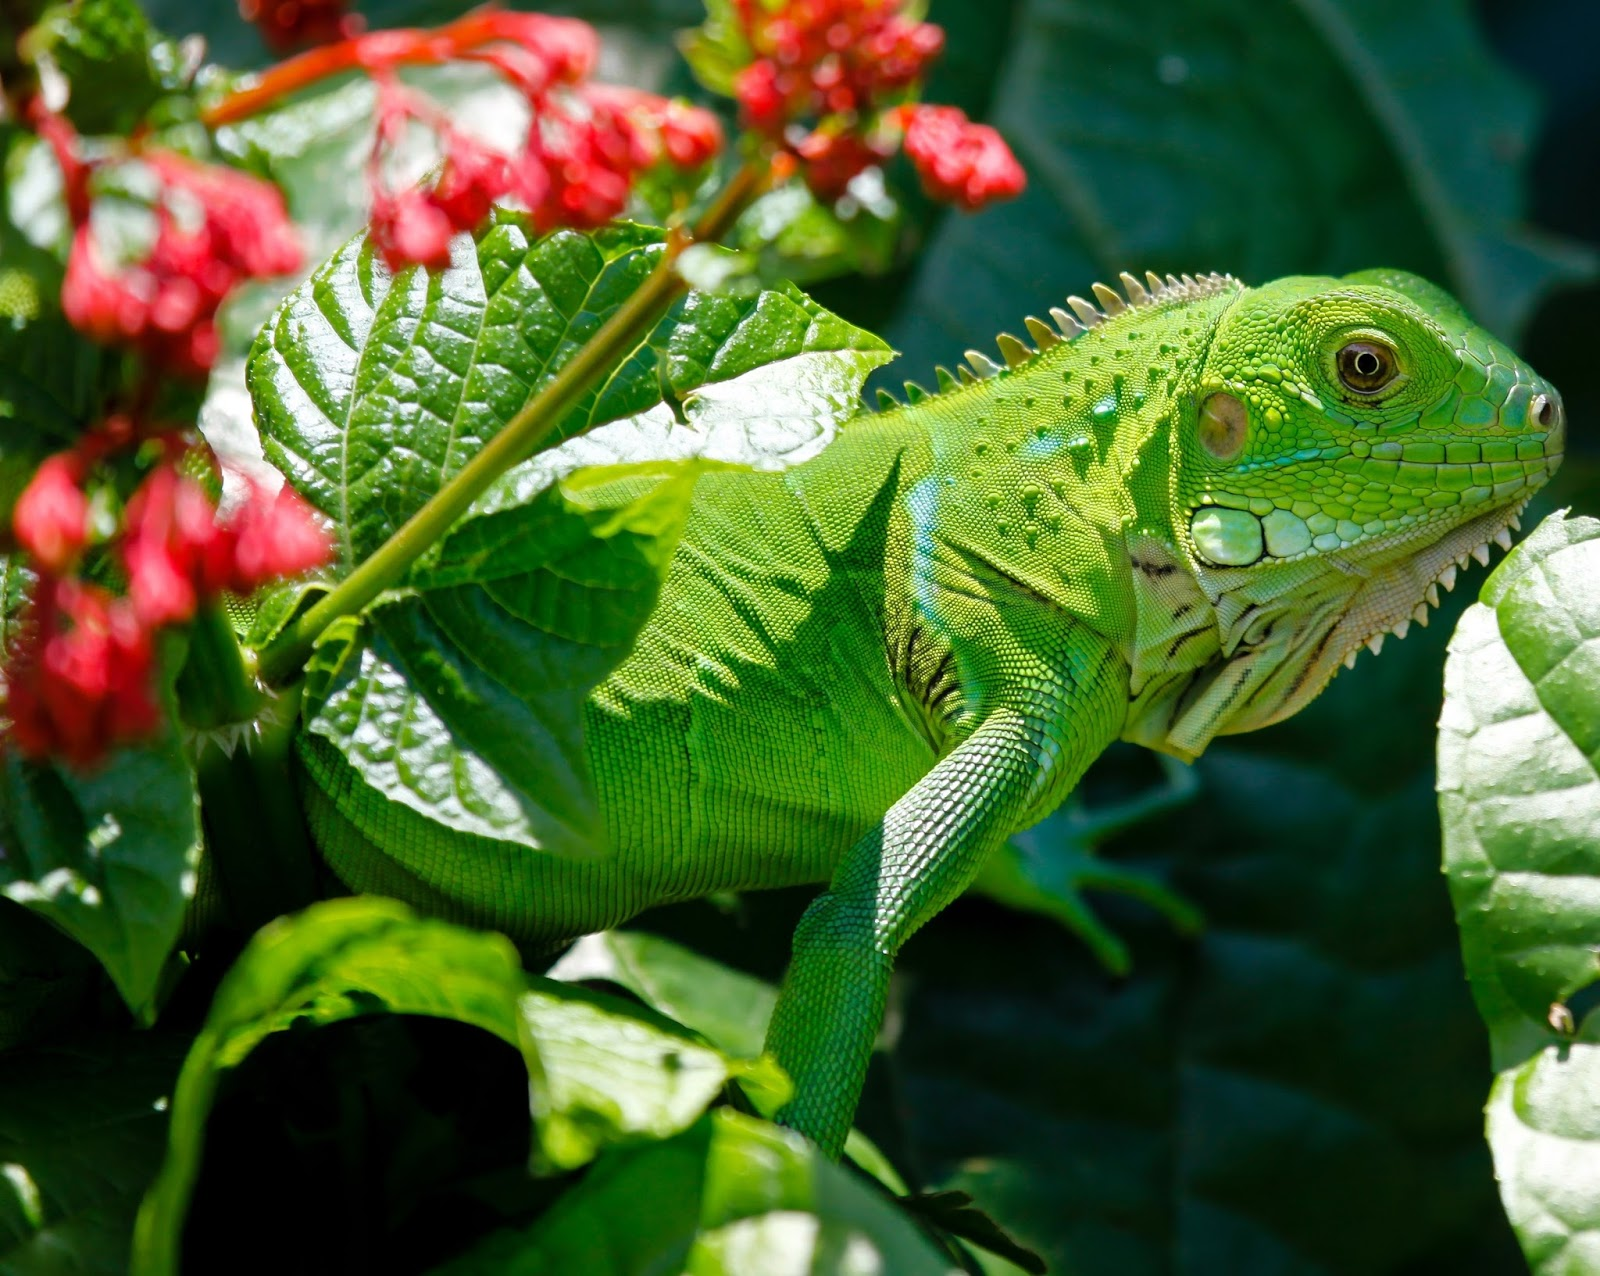 An image of a green iguana.